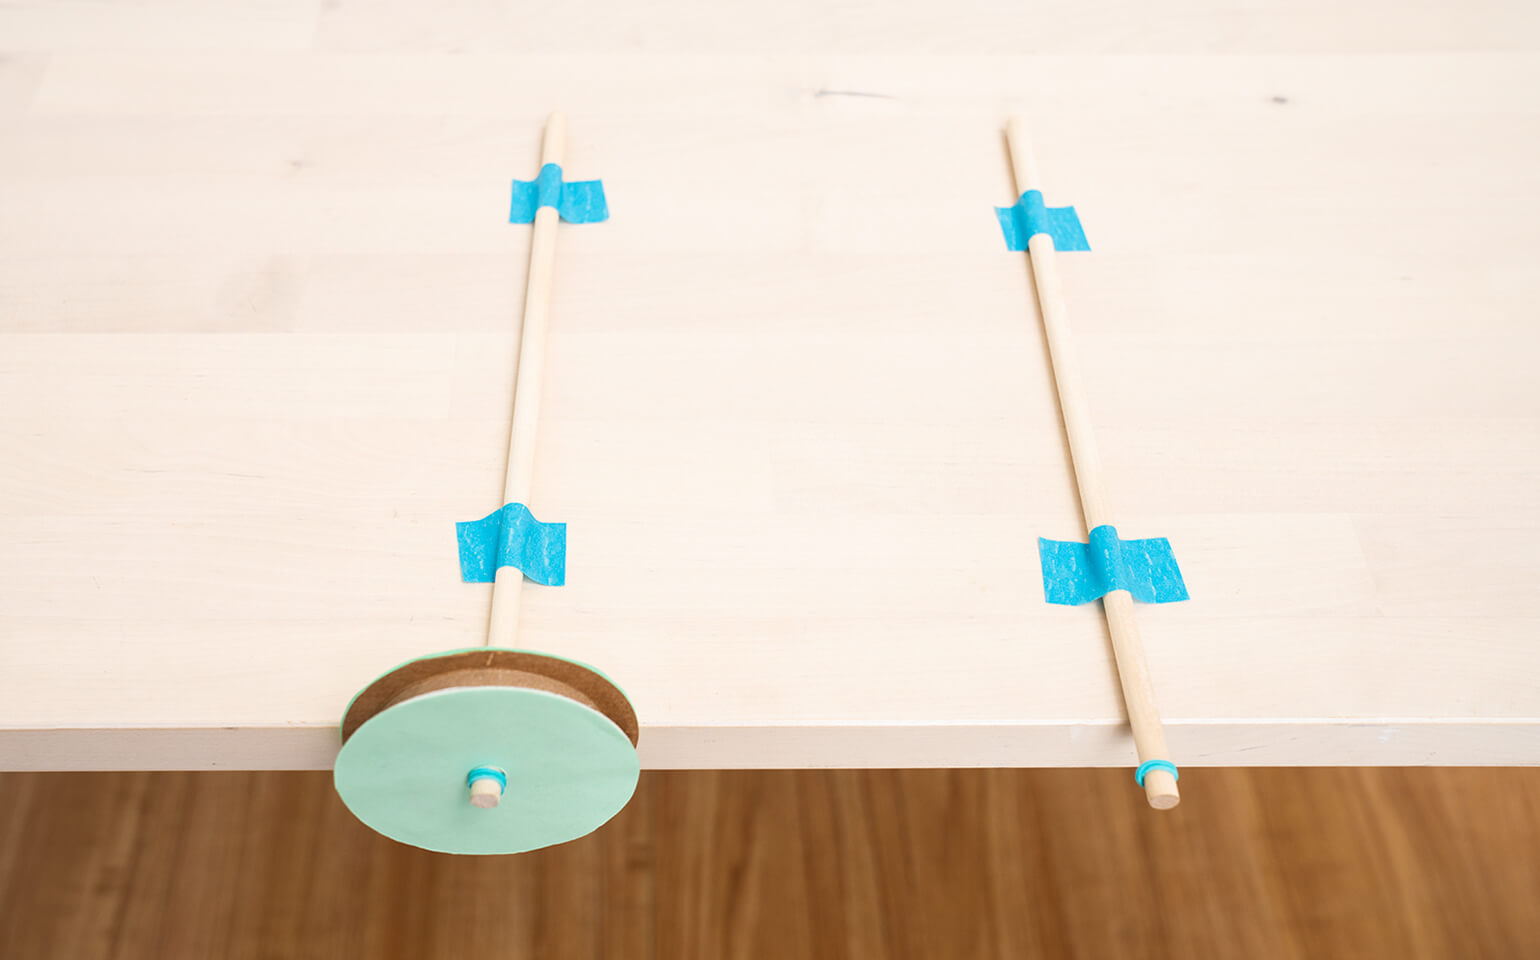 Playing-With-Pulleys-Body-7-2x